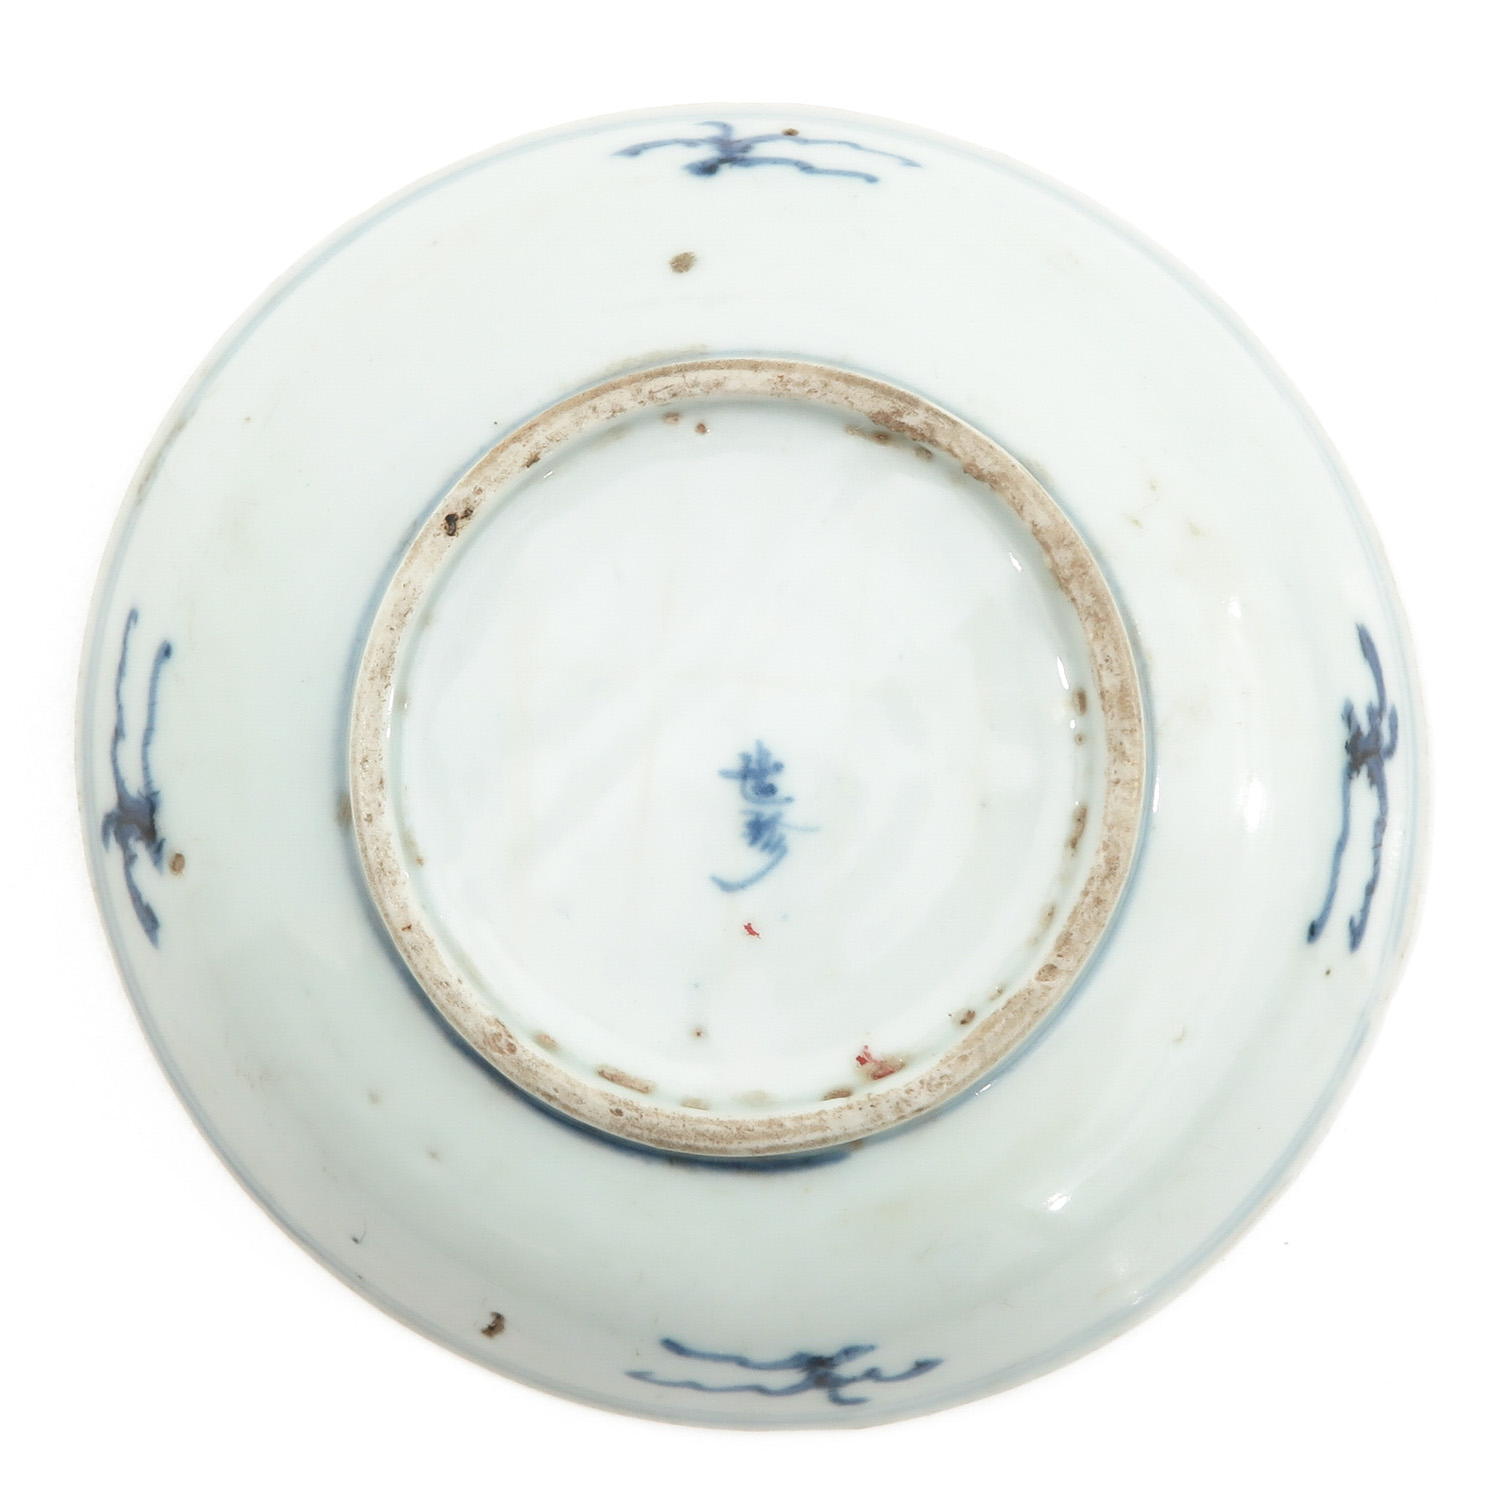 A Collection of 3 Plates - Image 4 of 10